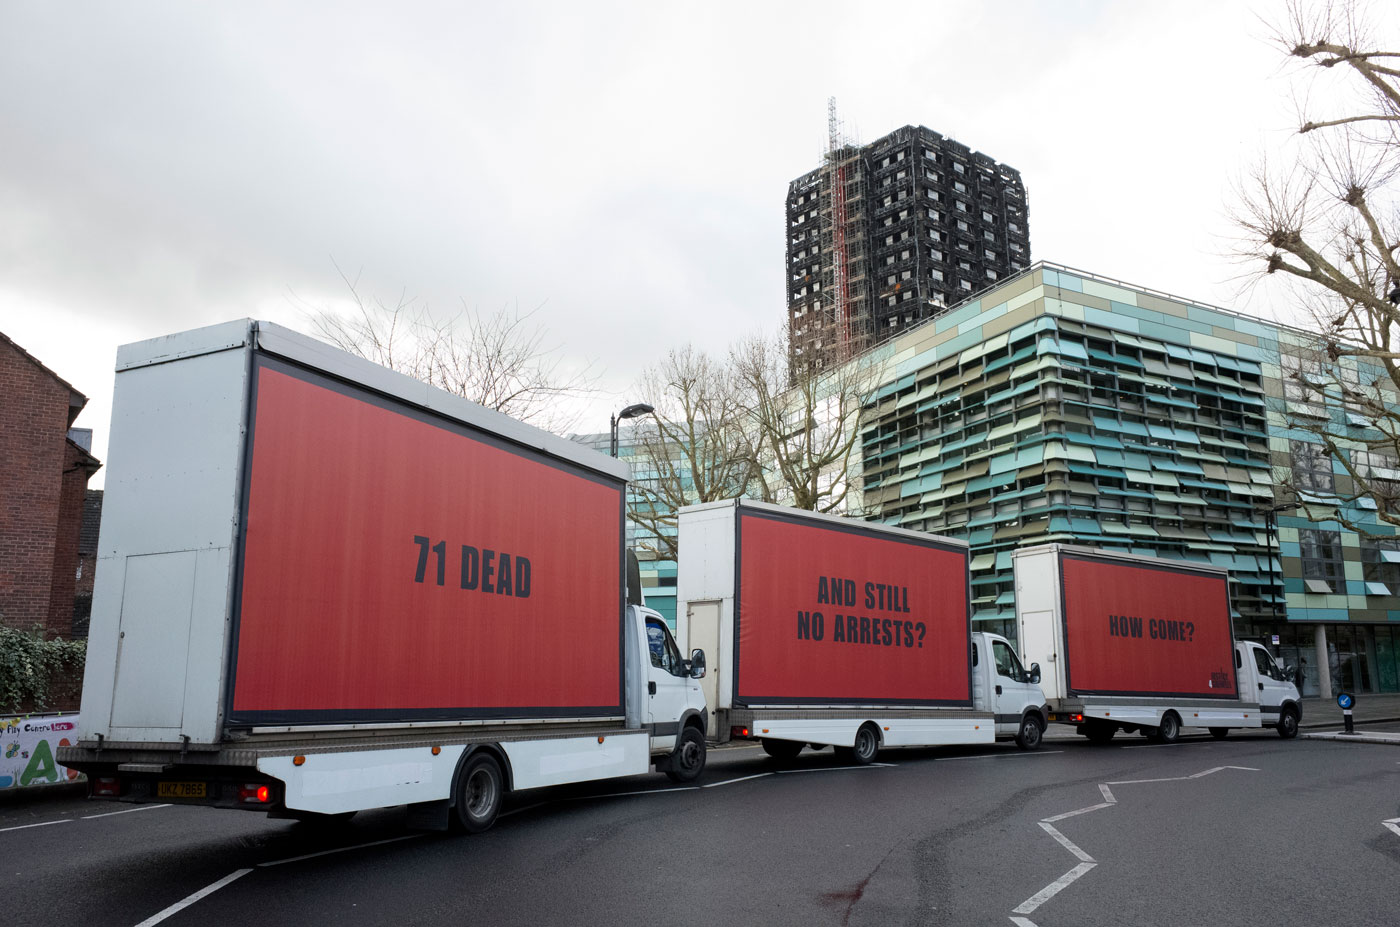 https://i1.wp.com/justice4grenfell.org/wp-content/uploads/2018/02/3-billboards-outside-grenfell-london.jpg?w=1400&ssl=1